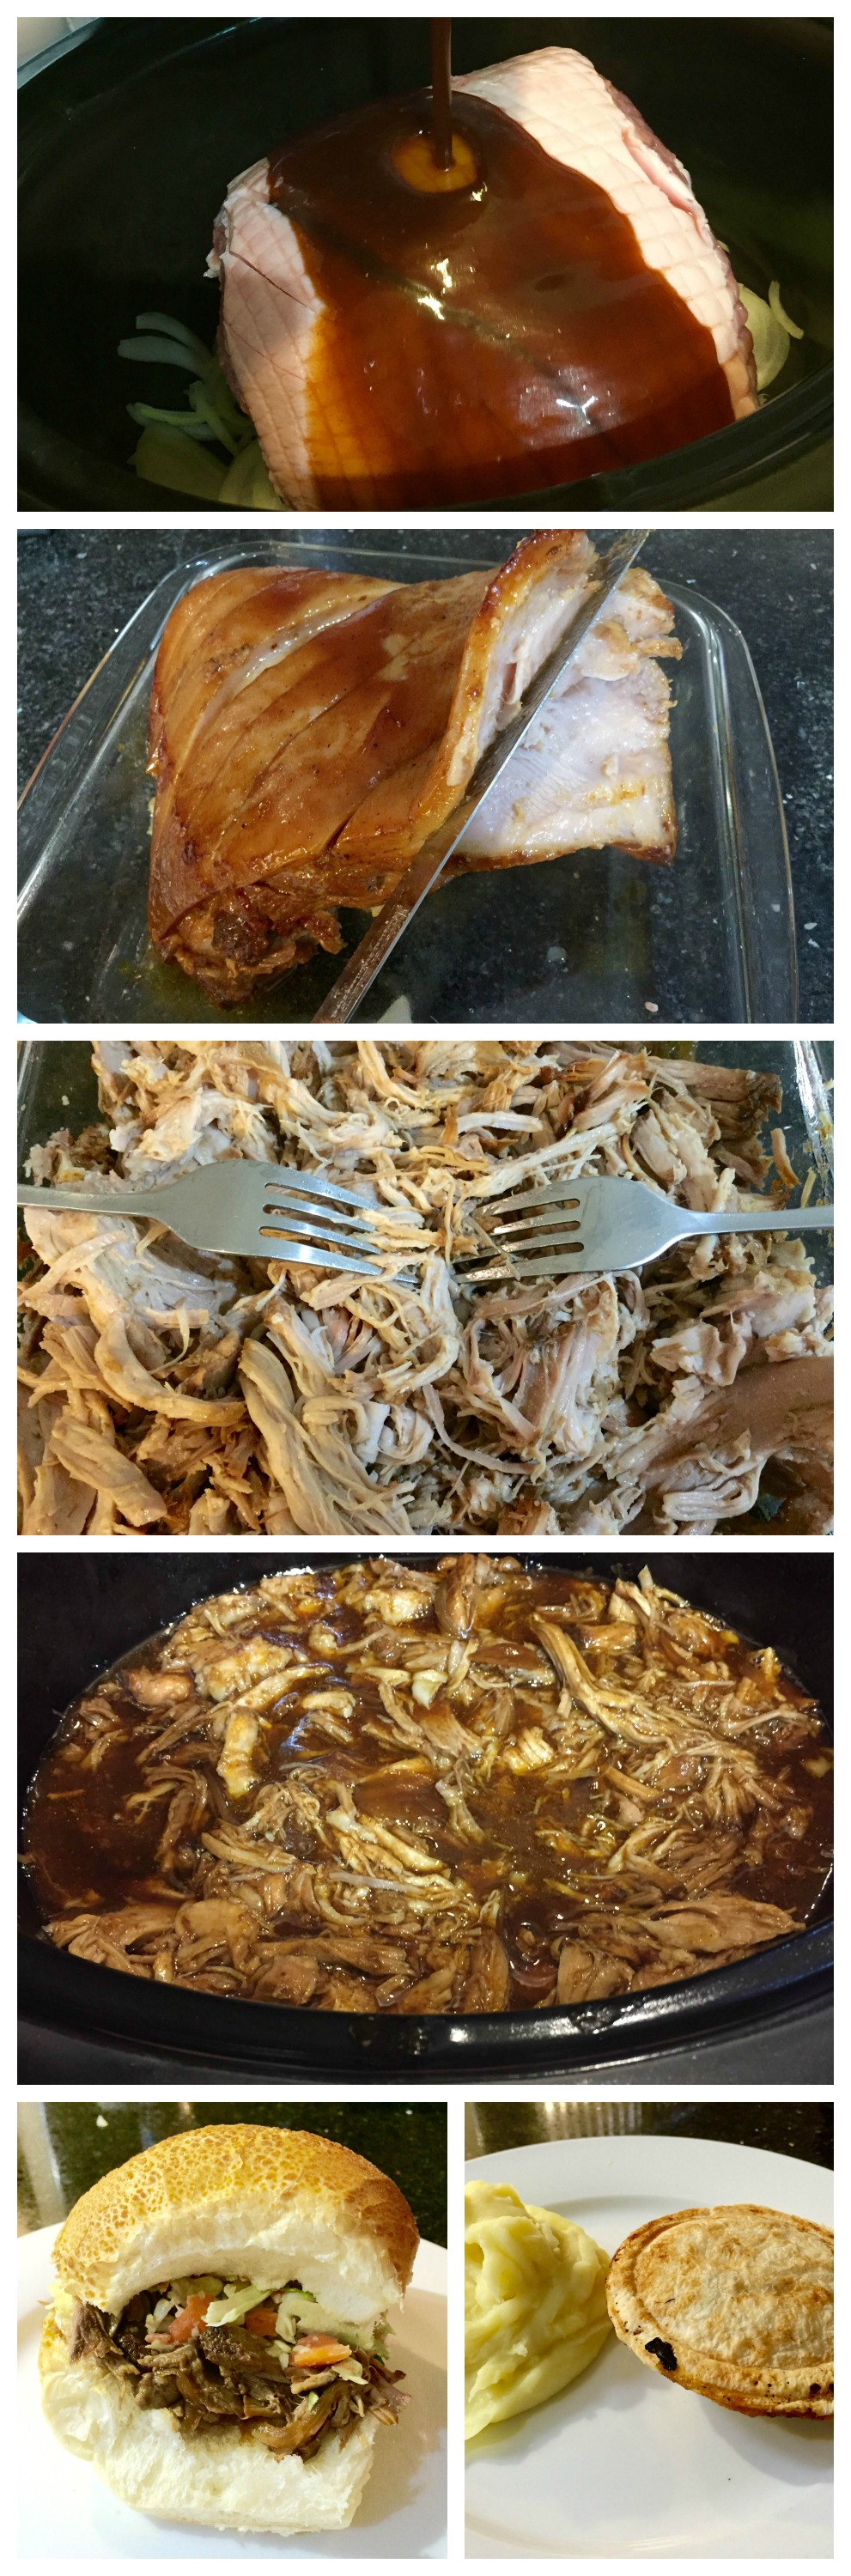 Slow Cooker - Sweet pulled pork recipe